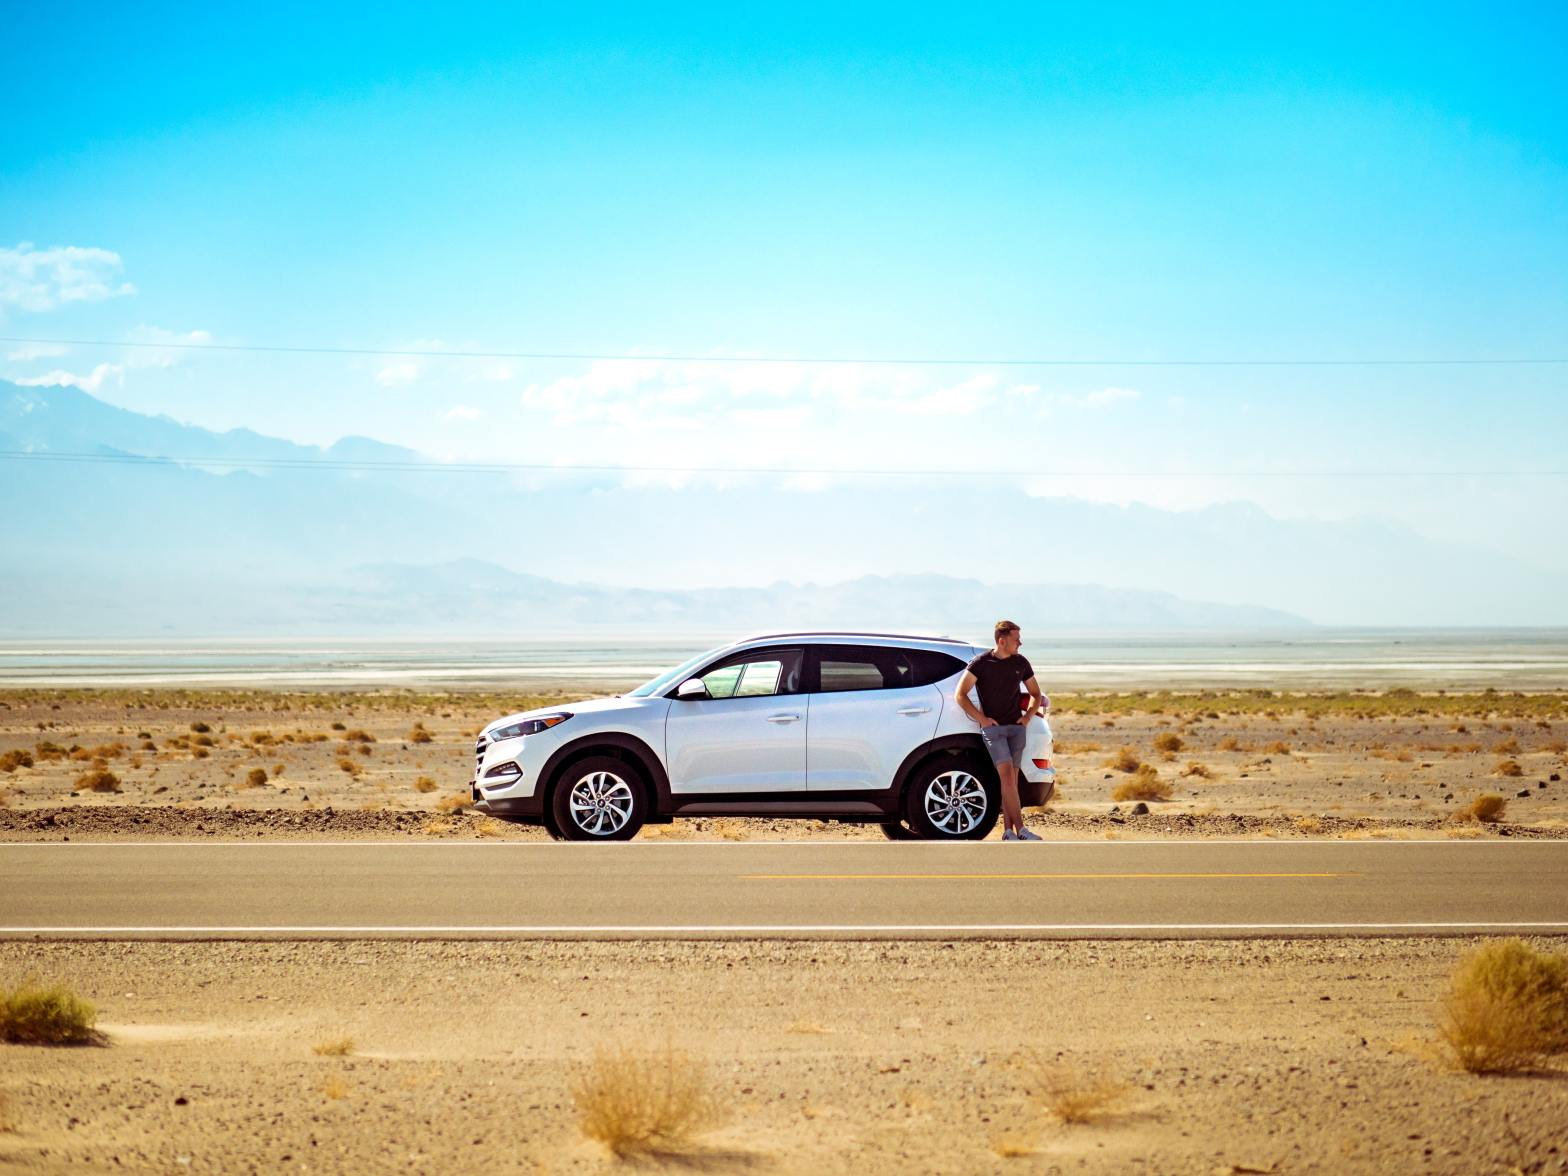 man standing by car in desert